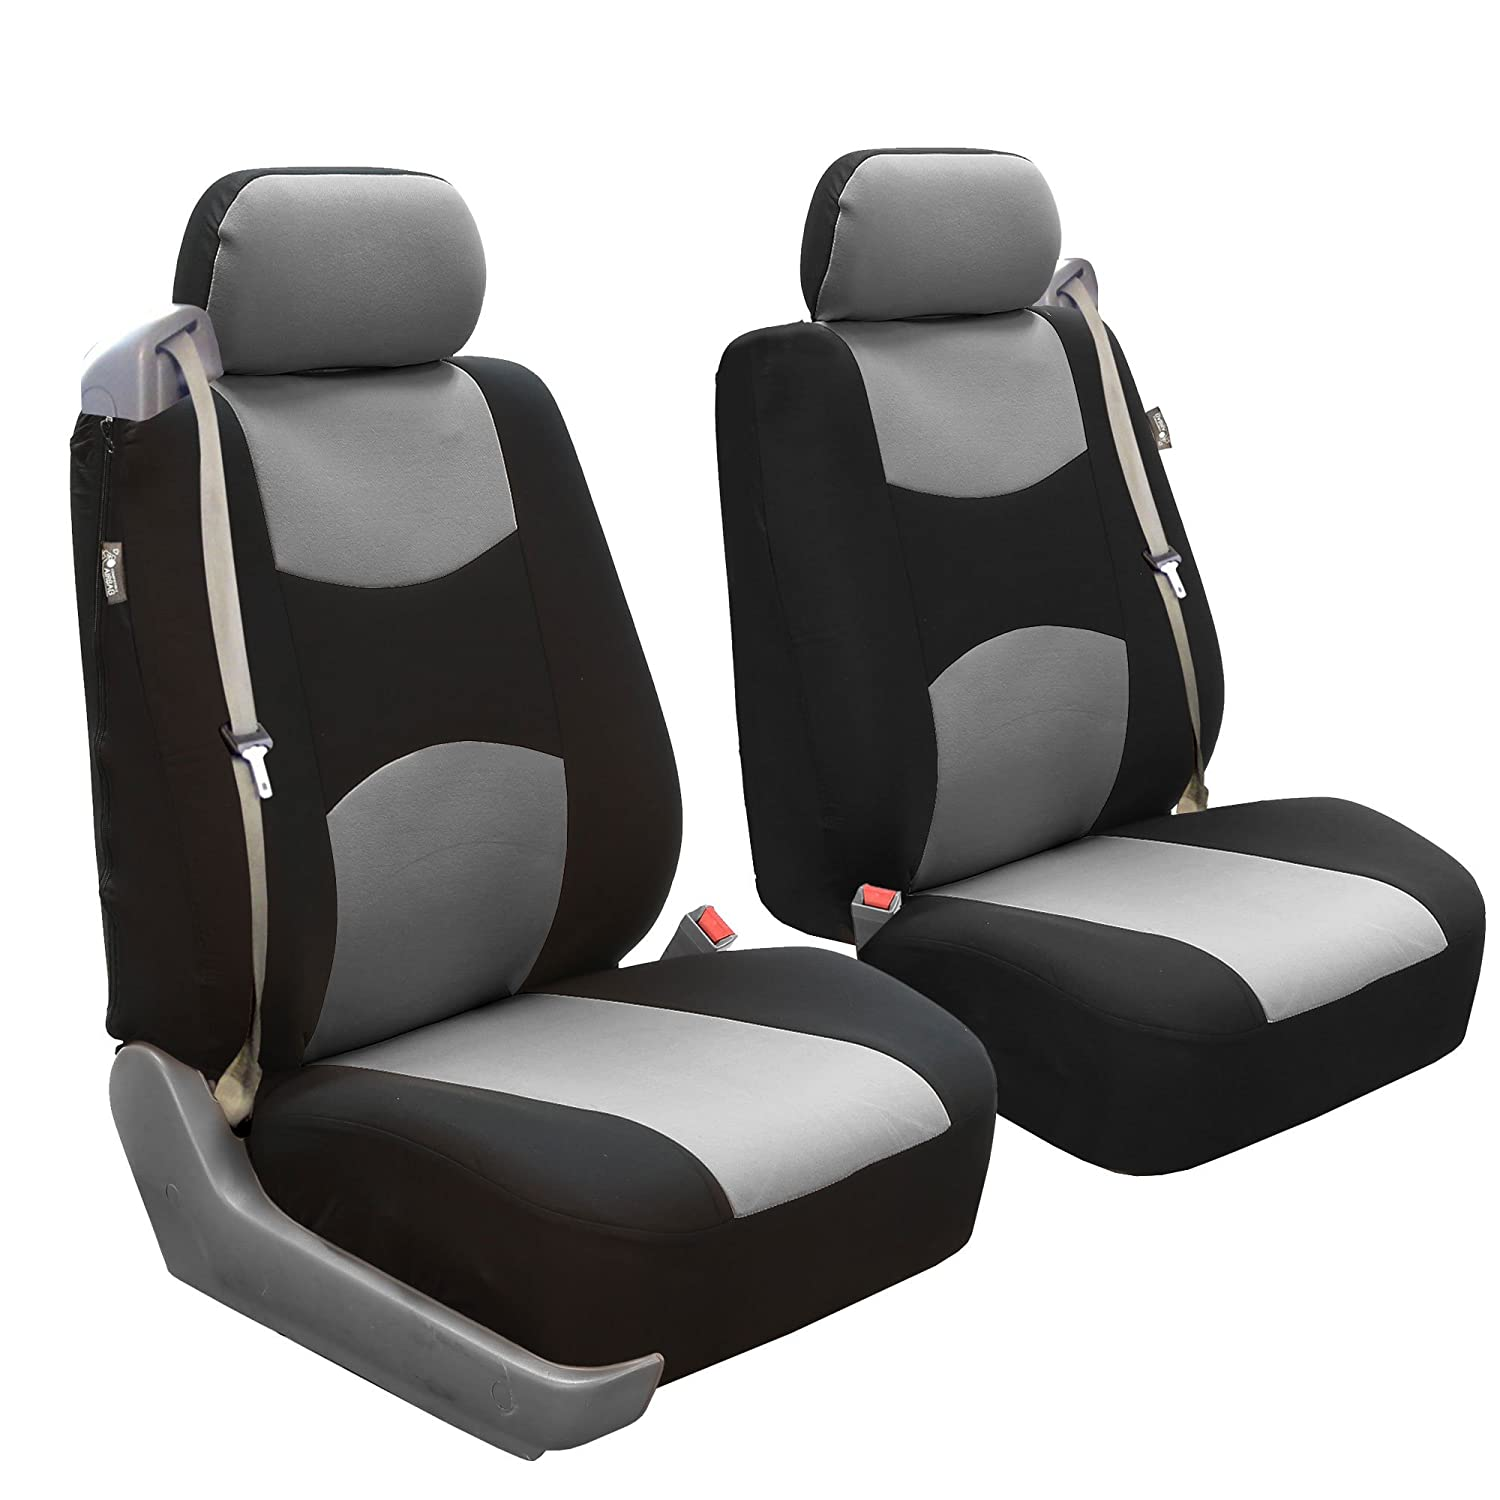 FH Group FB351BLACK102 Black Flat Cloth Front Low Back Seat Cover, Set of 2 (Built-In Seatbelt Compatible)